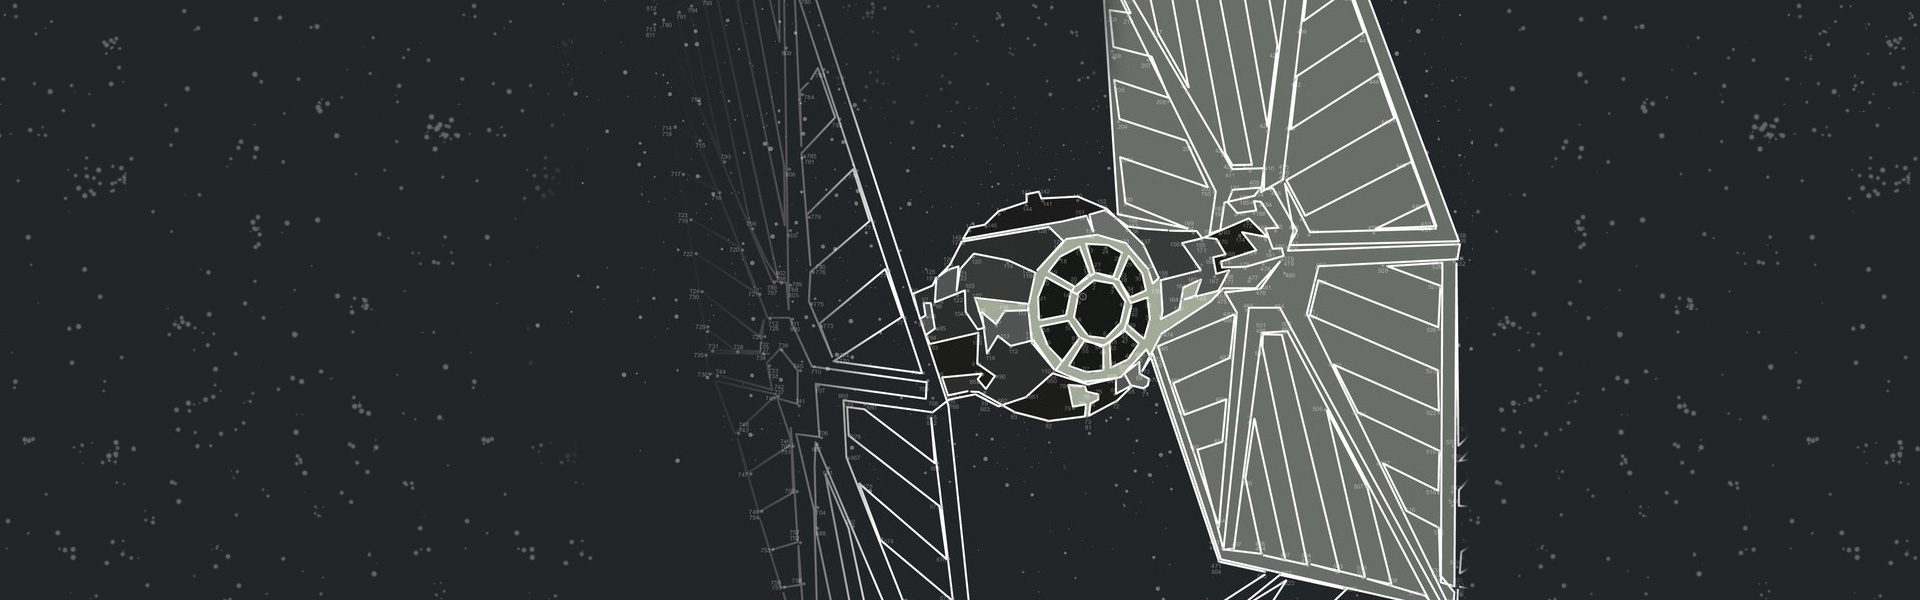 Star Wars Dot-to-Dot Free Pattern Download